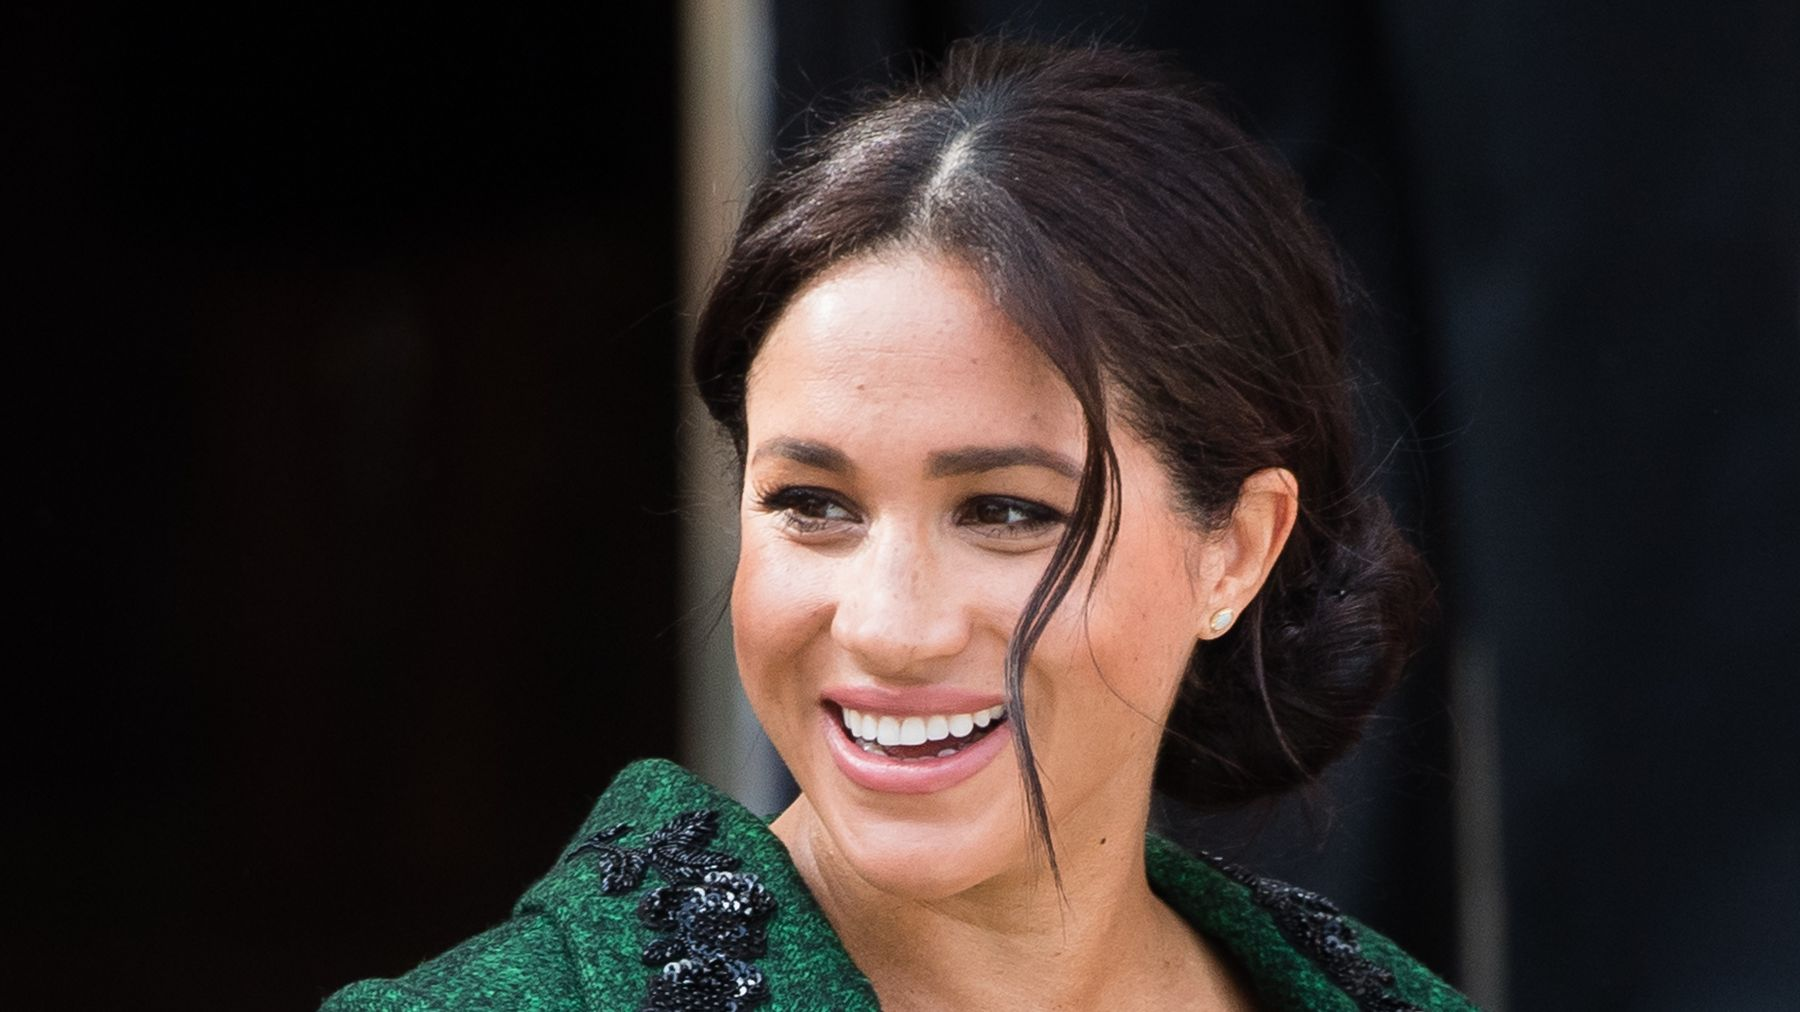 616642194 This Is Why Meghan Markle Isn't Wearing Her Engagement Ring   Grazia